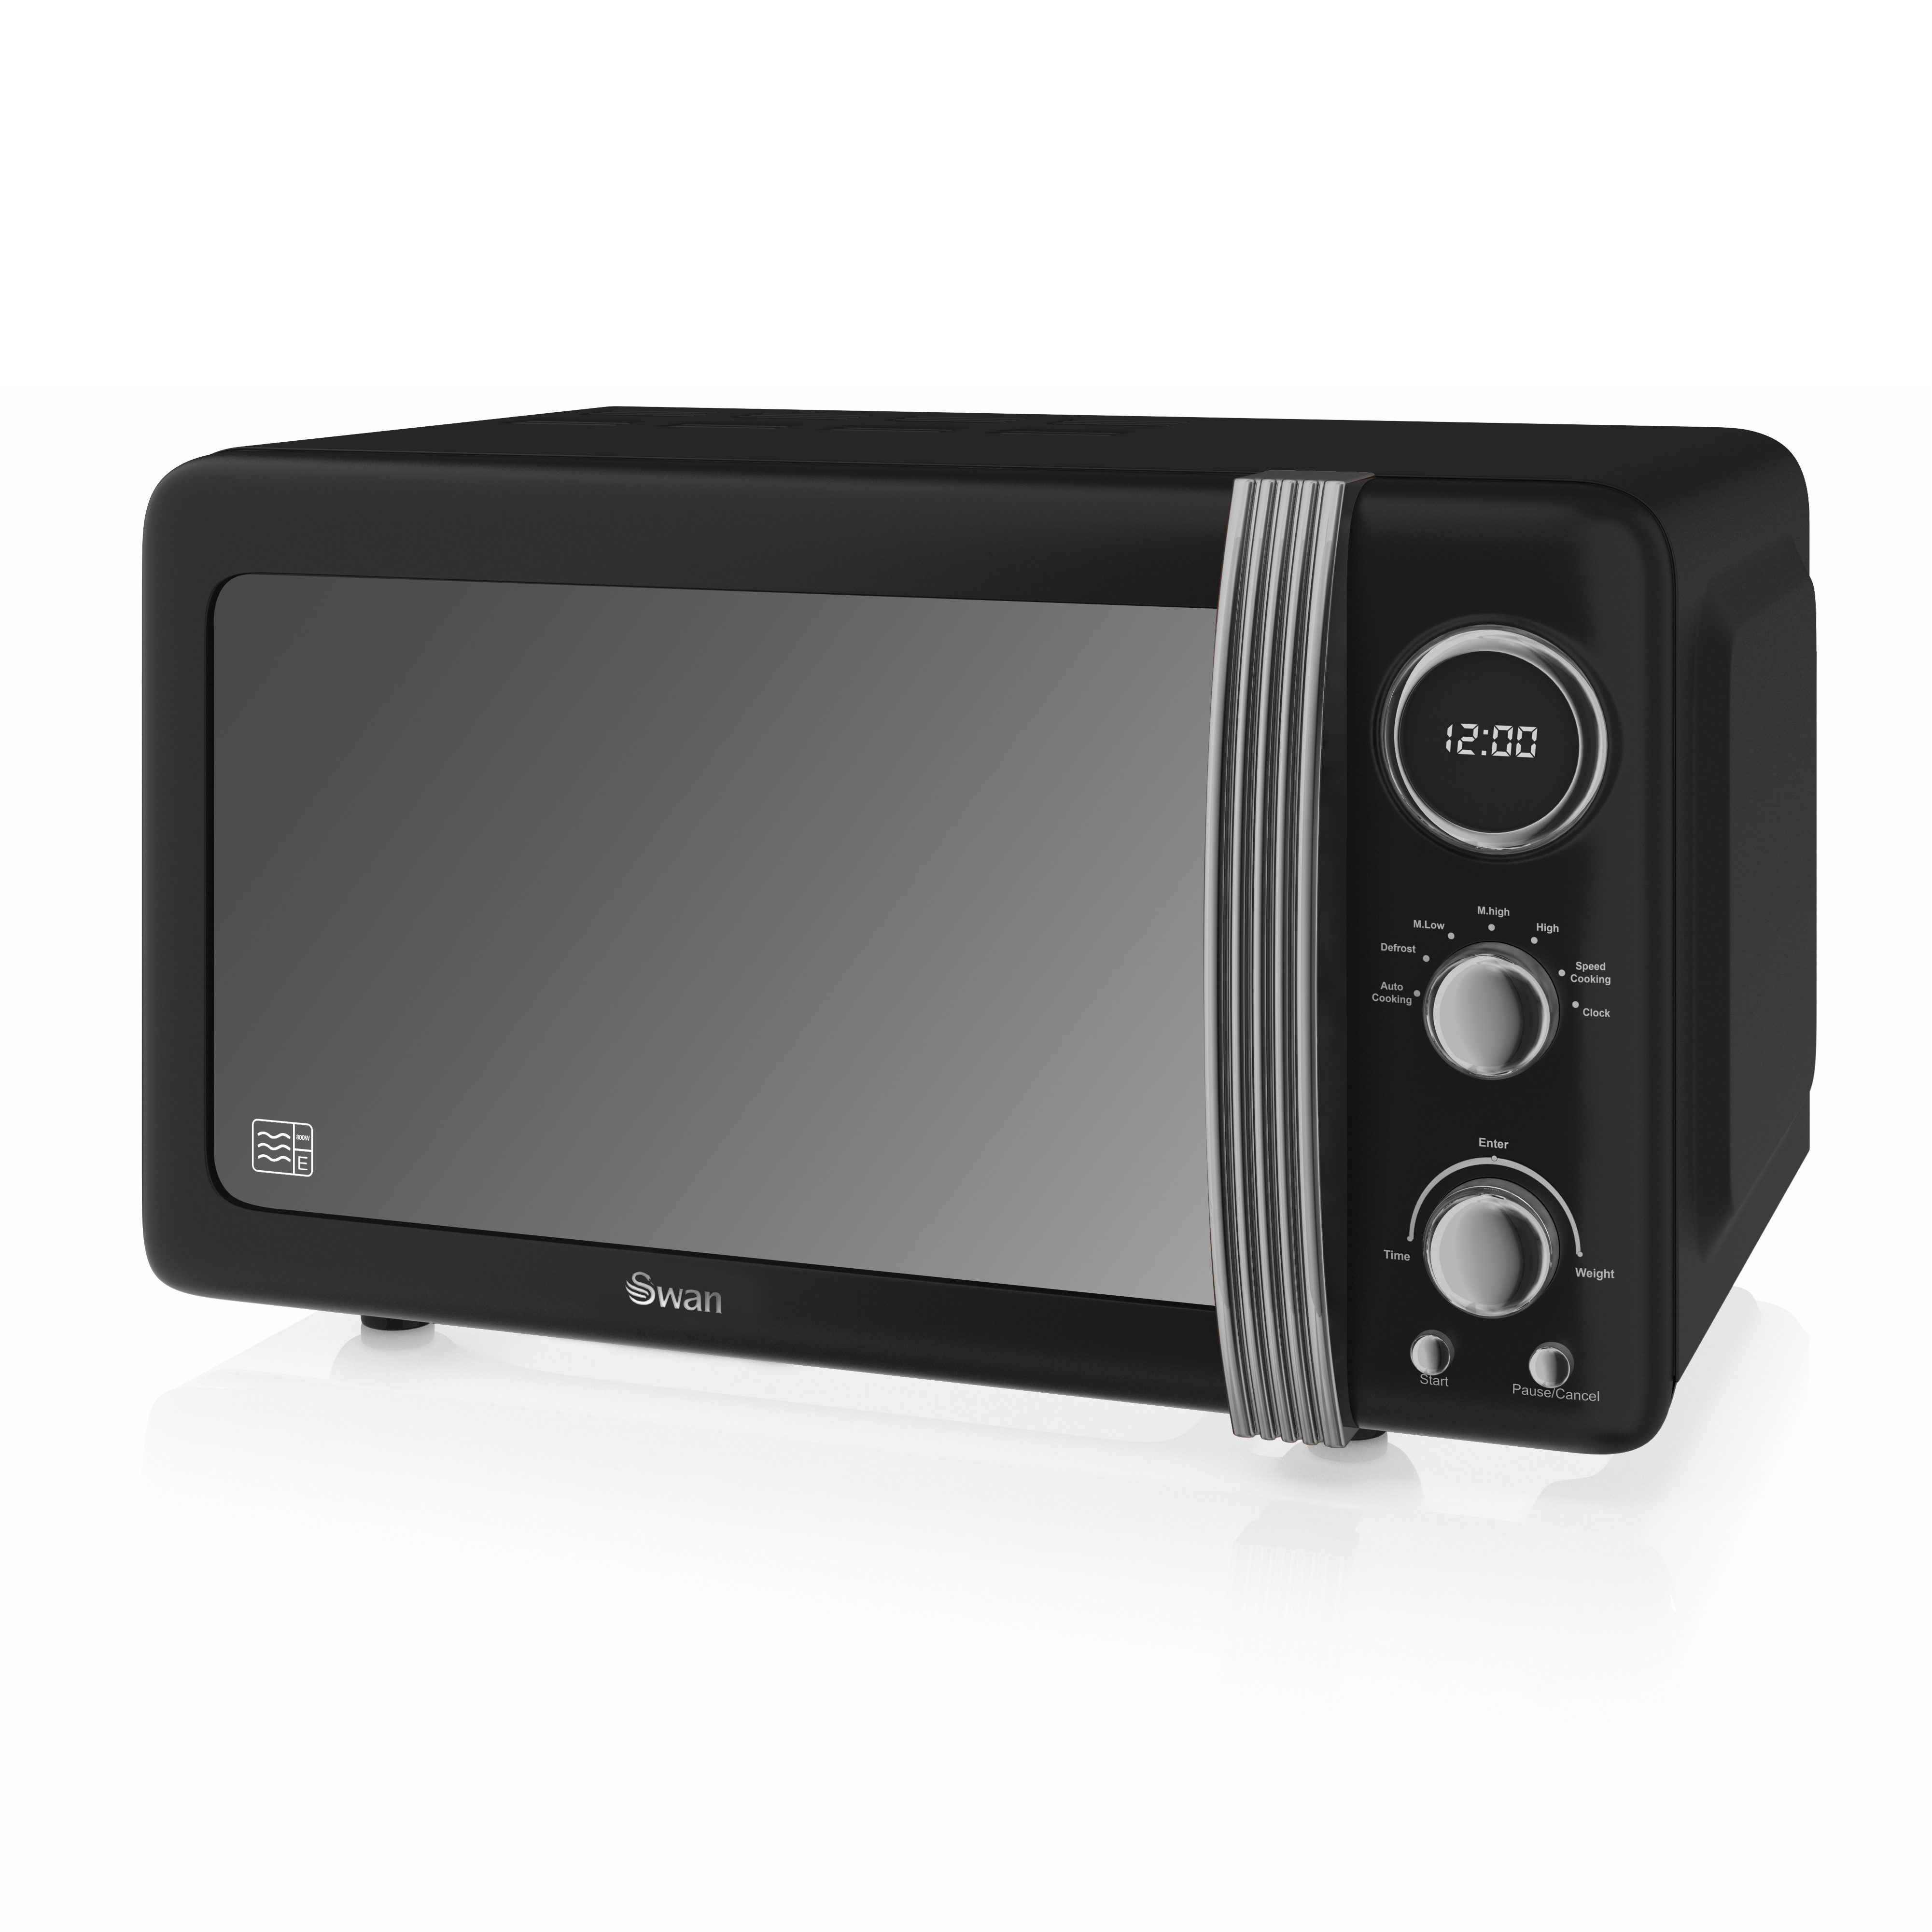 Swan 800W Digital Microwave - Black No Colour